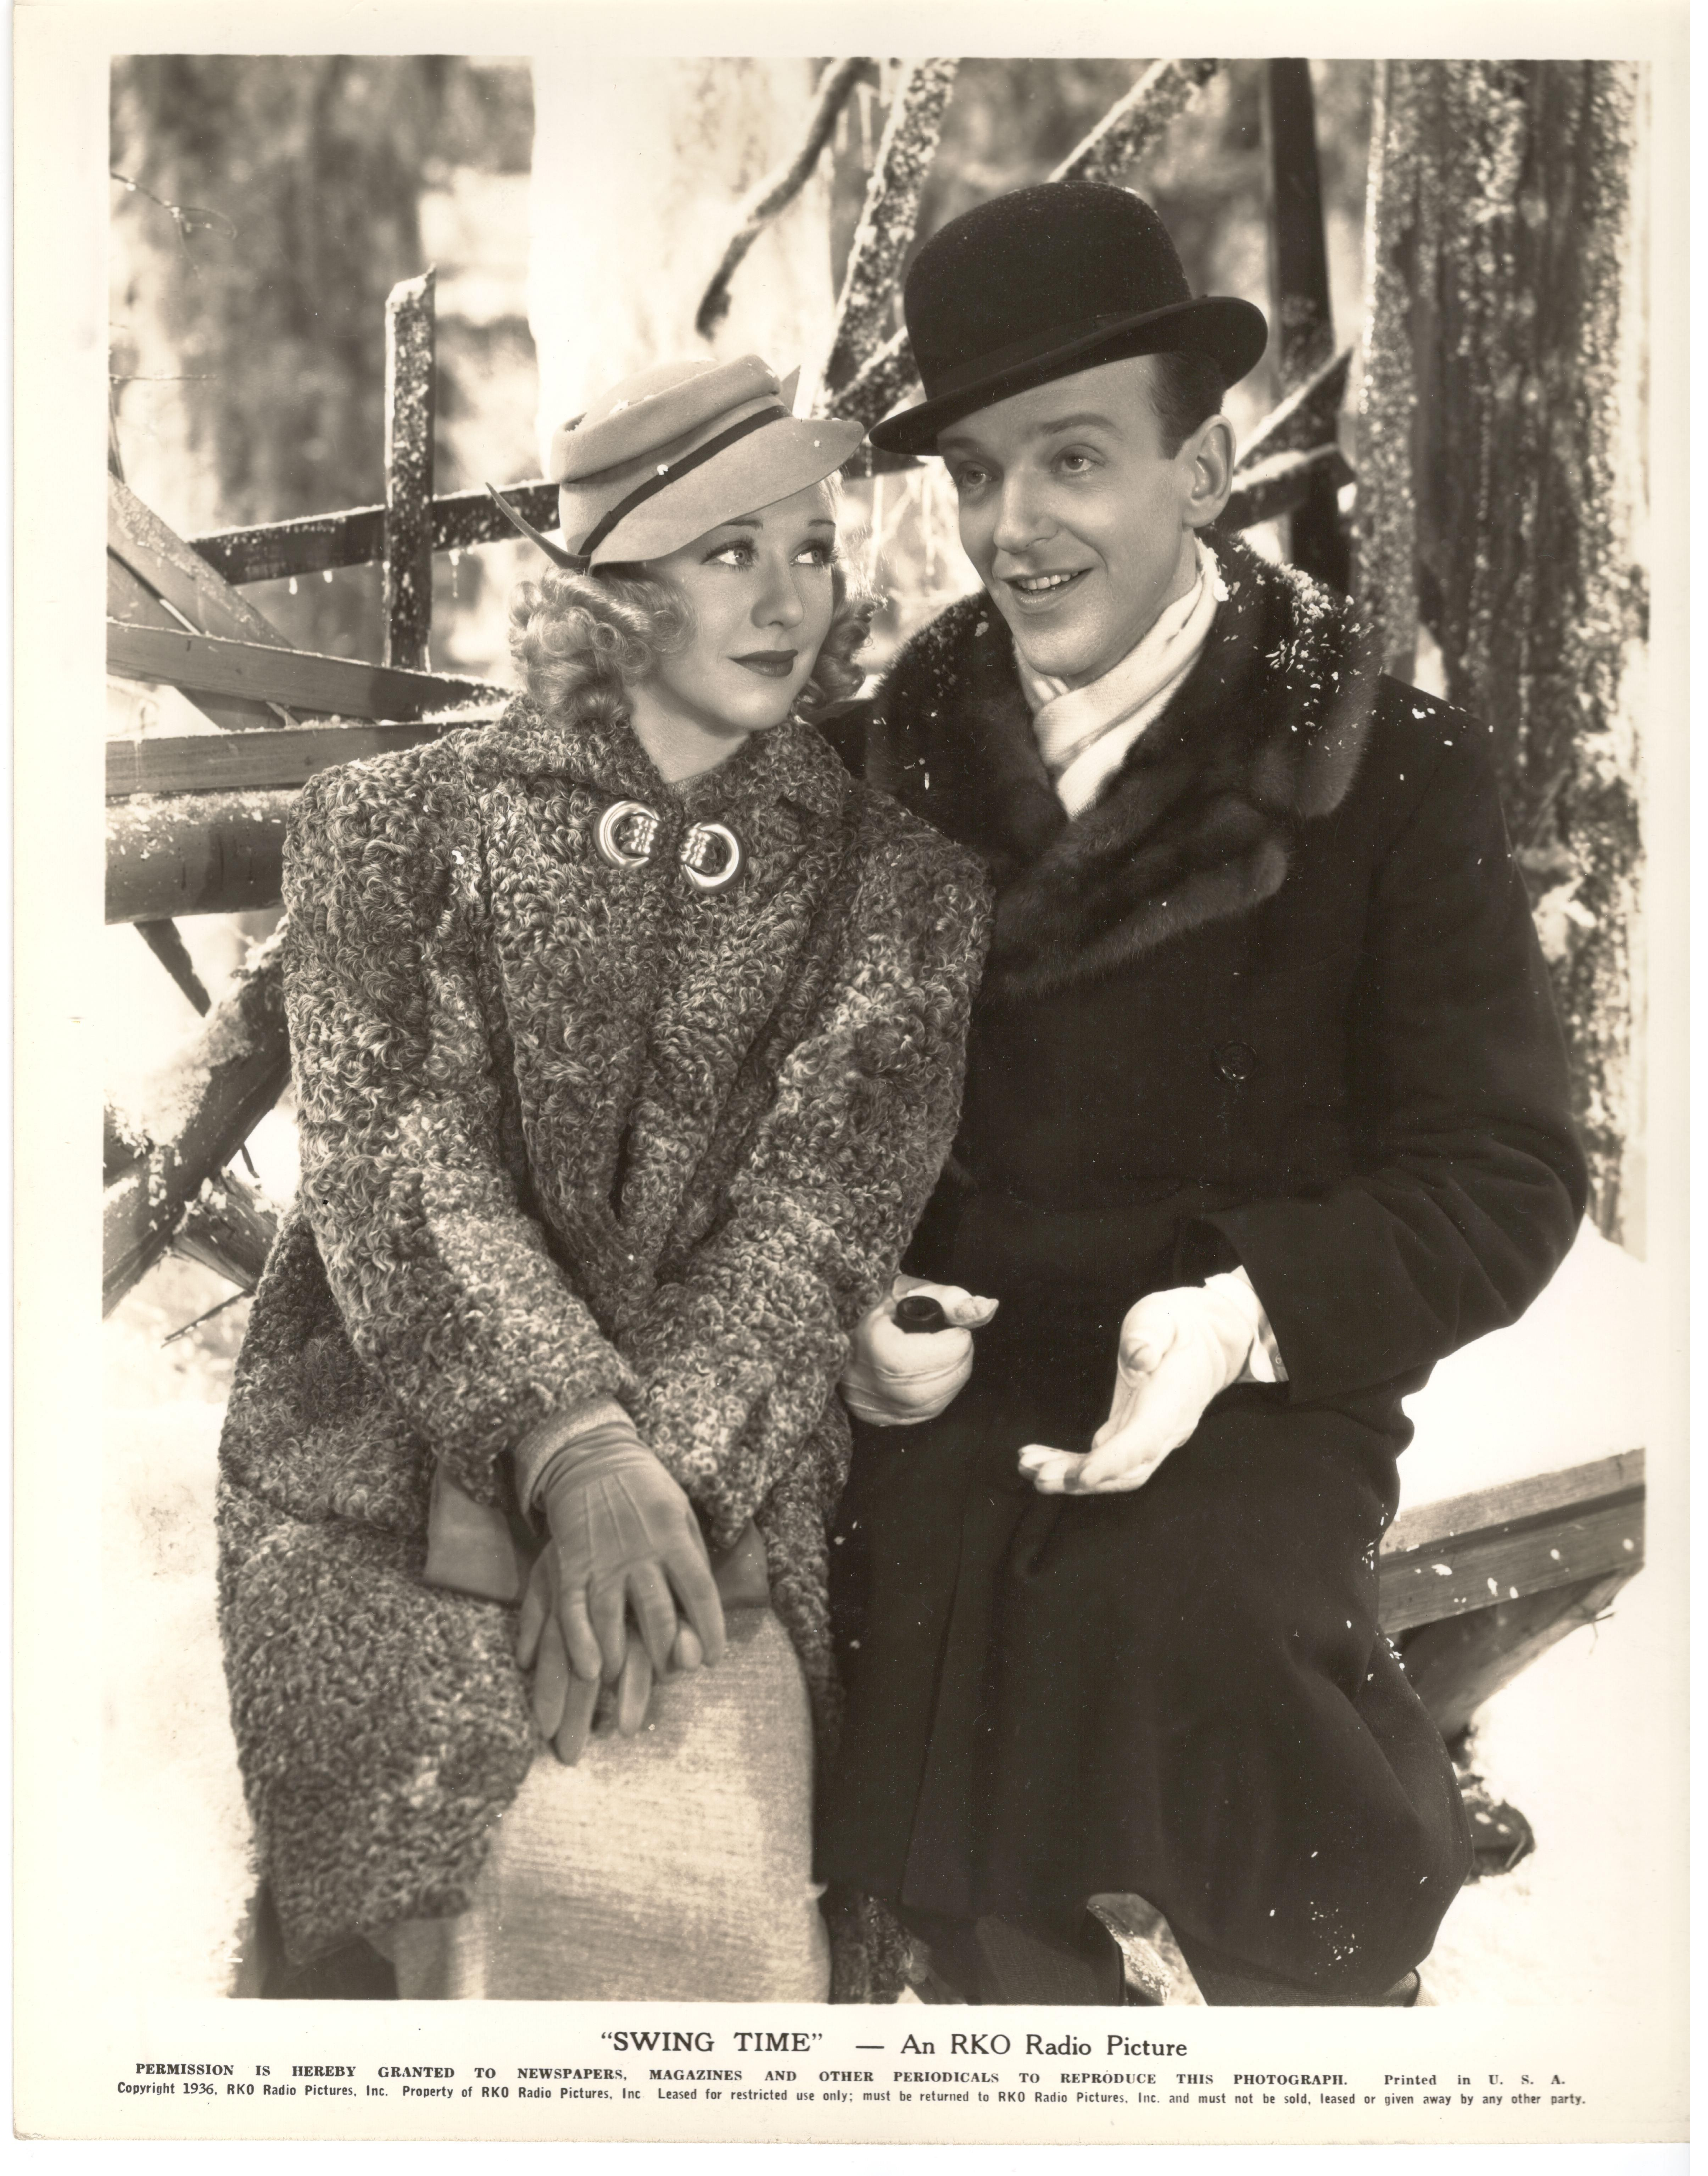 Ginger Rogers and Fred Astaire Swing Time Fotos retro